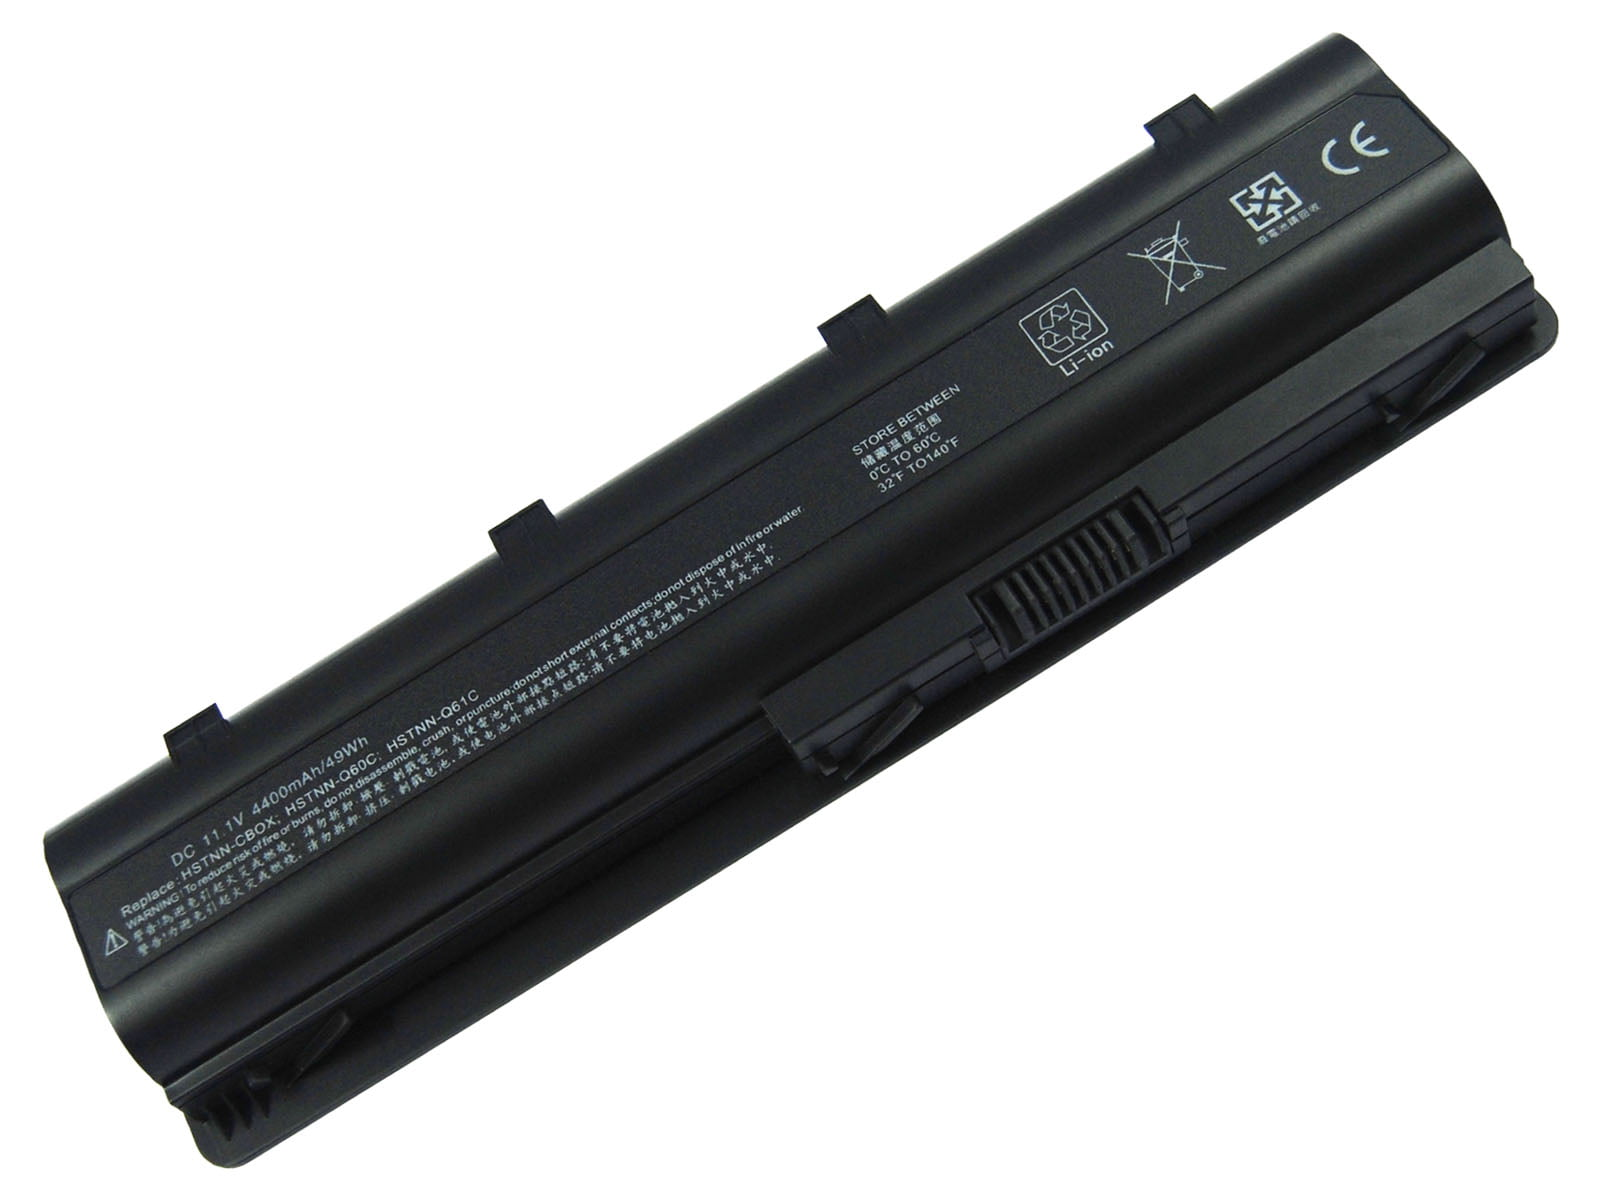 Superb Choice 6-cell HP 593554-001 Pavilion dm4 dv3 dv5 dv6 dv7 dv8 G4 G6 G7 Laptop Battery